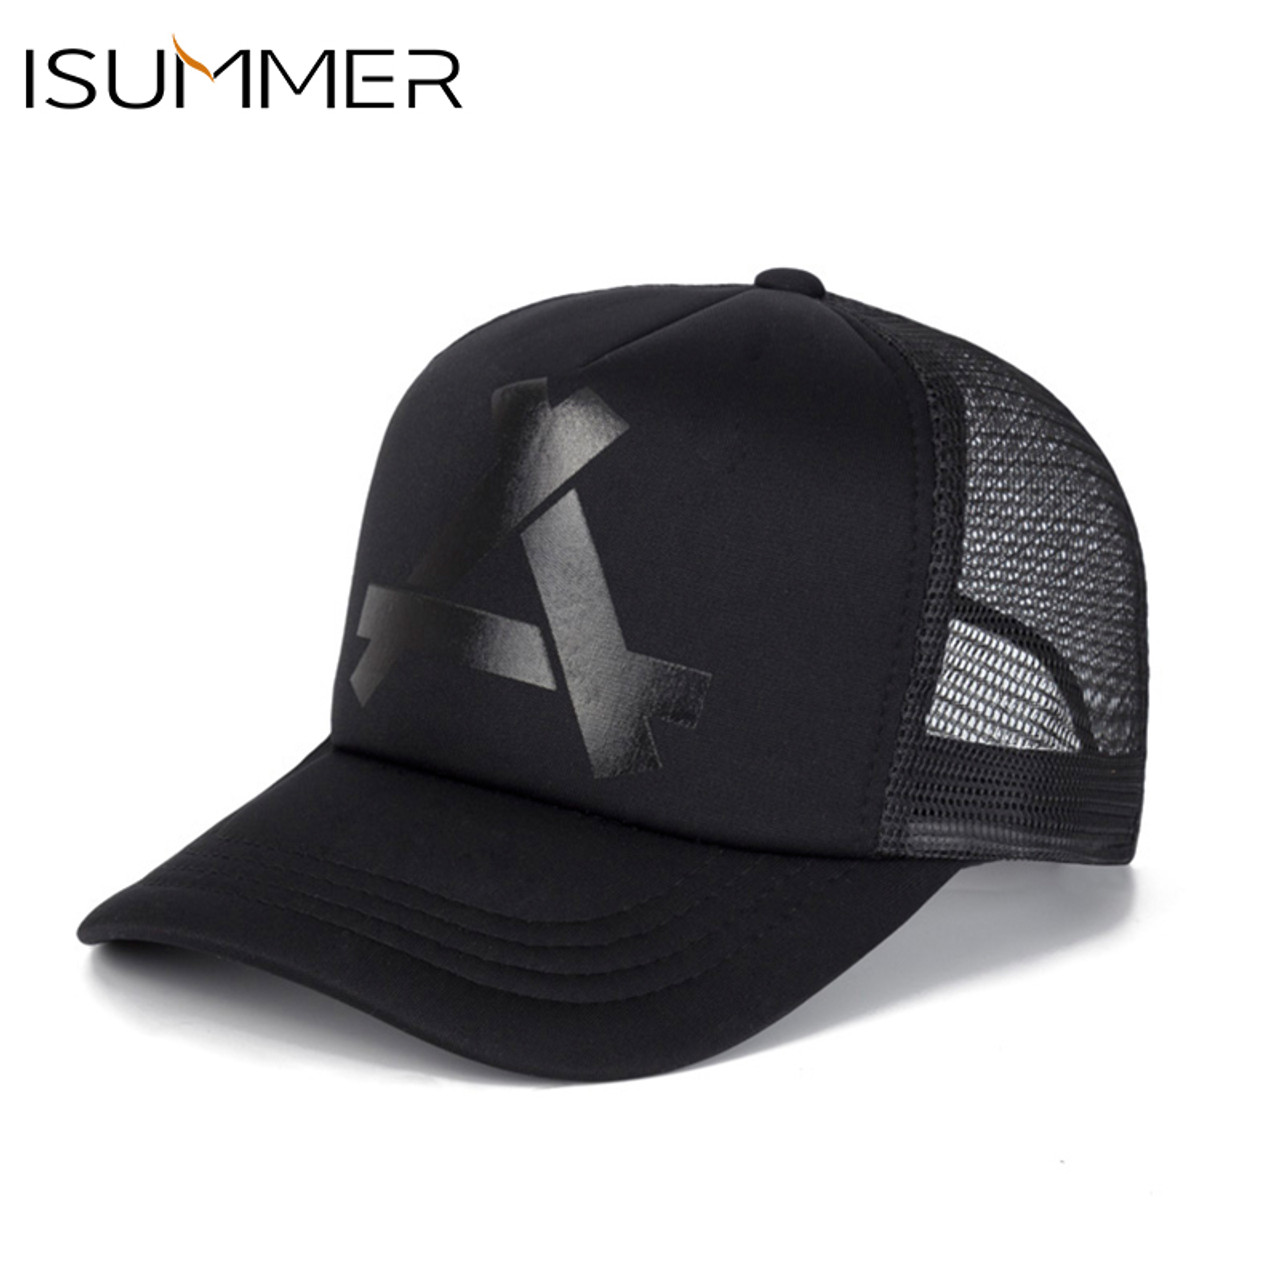 ... ISUMMER 2018 Summer Baseball Mesh Cap Men Hat Hip Hop Snapback Hat Dad  Hat Adjustable Leisure ... 0dbd10a41a2